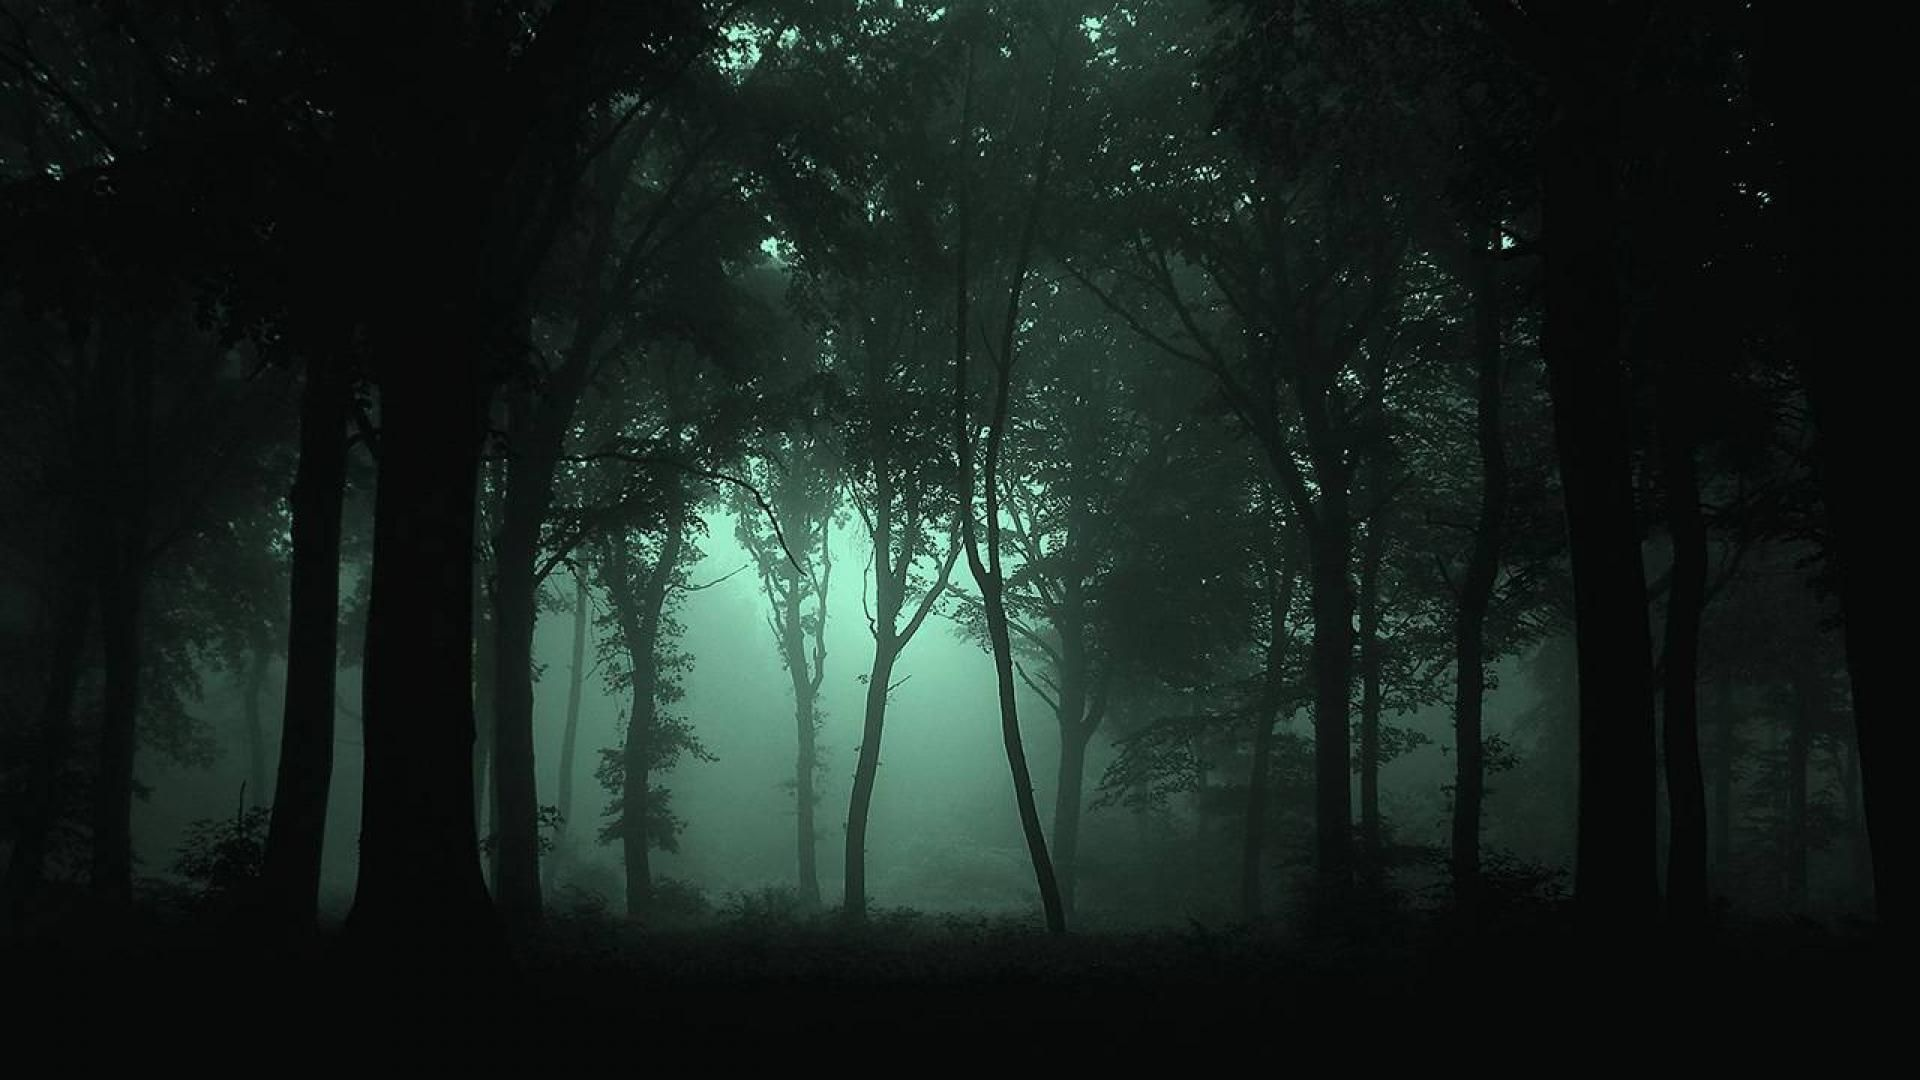 Dark Forest Wallpaper Mobile | Natures Wallpapers ...